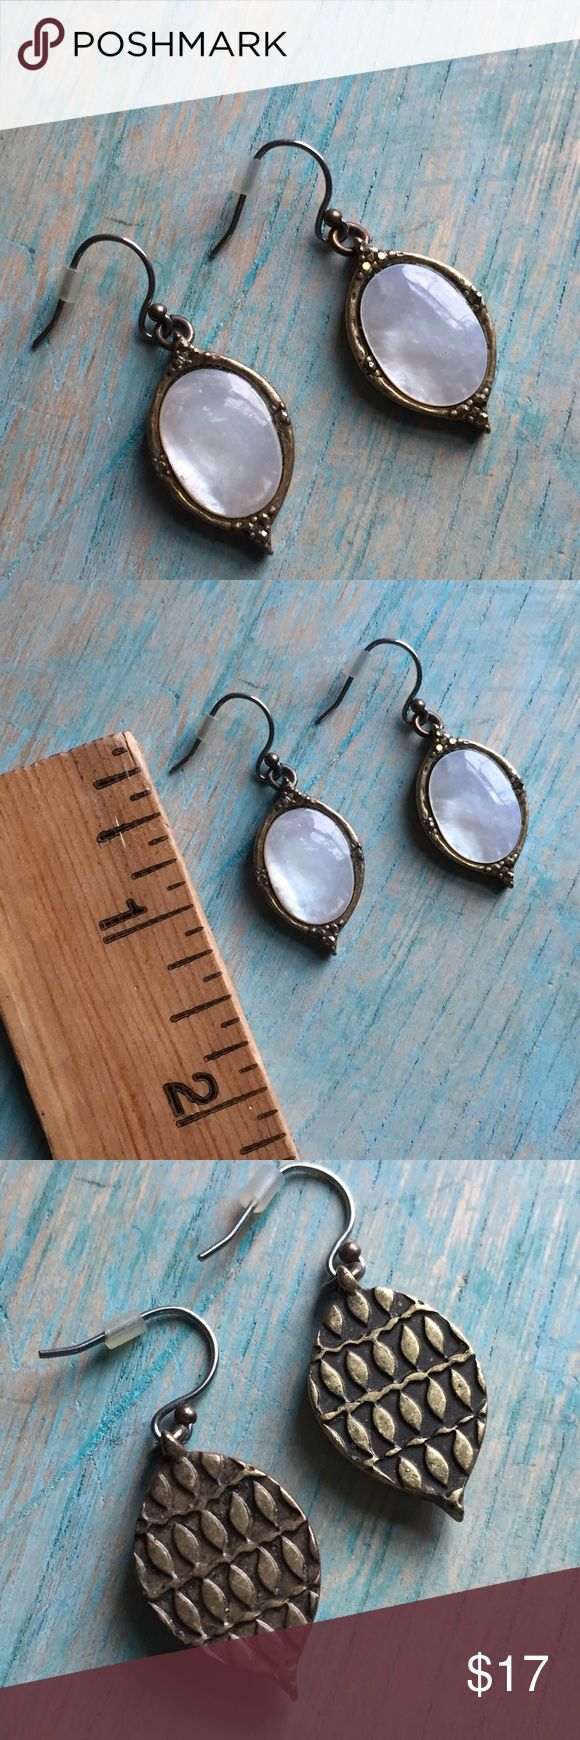 Lucky brand earrings antique gold and pearl Excellent preowned condition Lucky Brand Jewelry Earrings